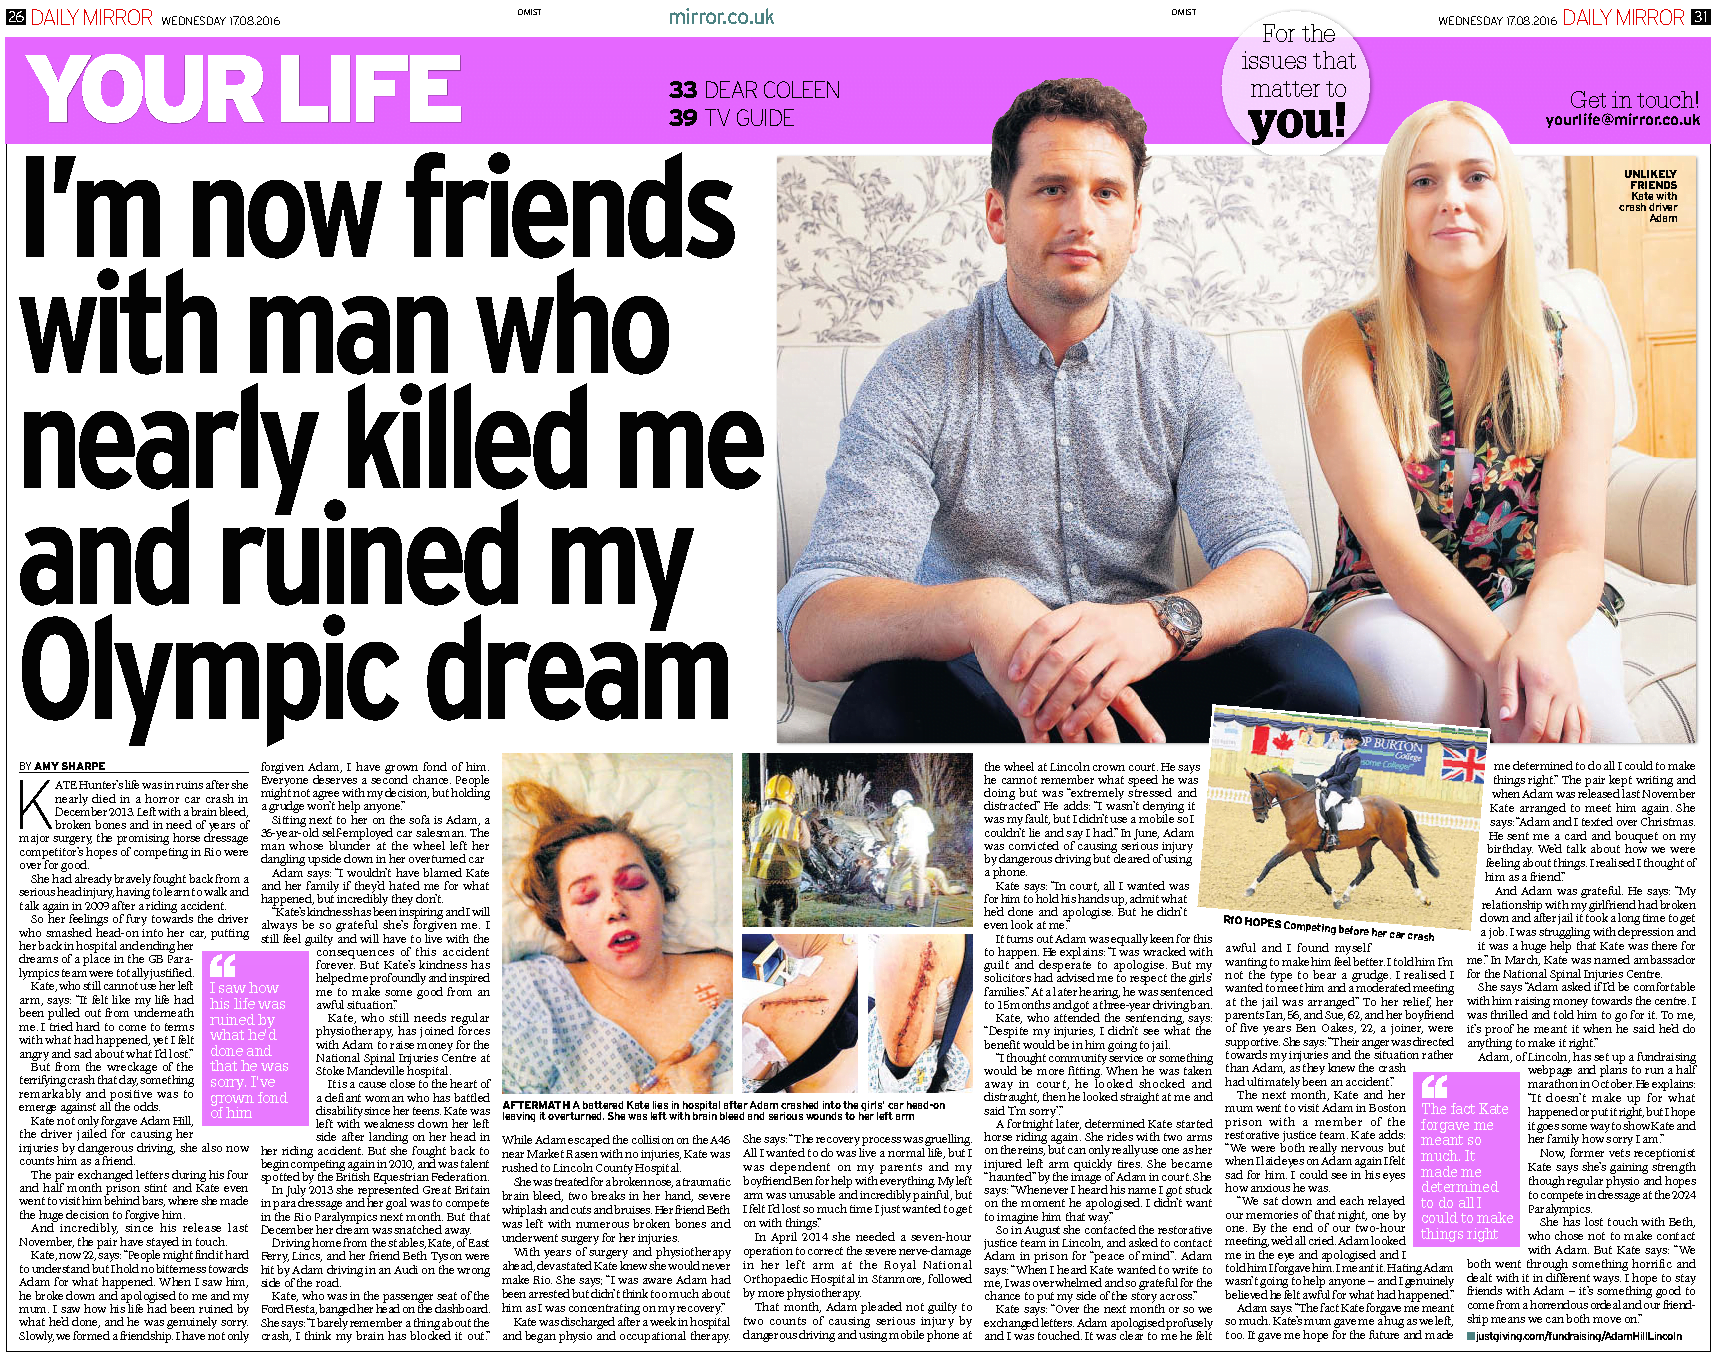 im-friends-with-man-who-nearly-killed-me-and-ruined-my-olympic-dream-daily-mirror-17-8-2016